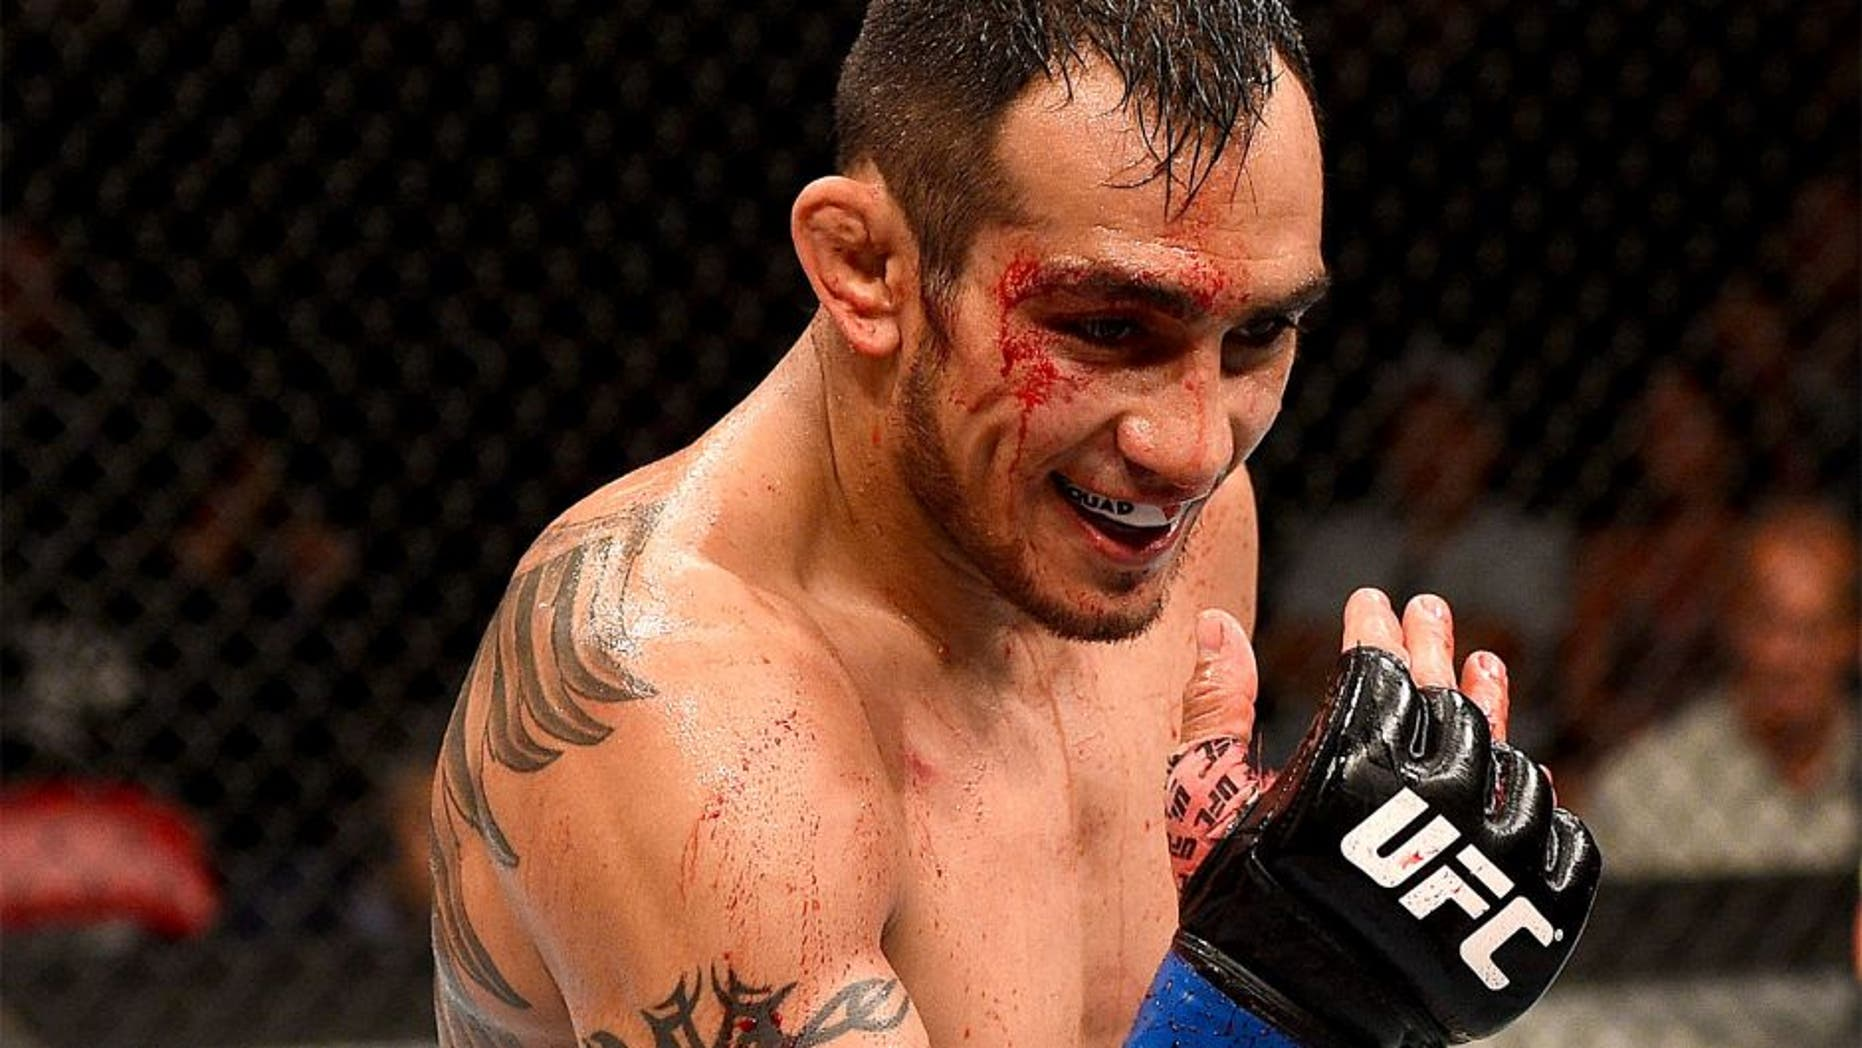 SAN DIEGO, CA - JULY 15: Tony Ferguson taunts Josh Thomson in their lightweight bout during the UFC event at the Valley View Casino Center on July 15, 2015 in San Diego, California. (Photo by Jeff Bottari/Zuffa LLC/Zuffa LLC via Getty Images)